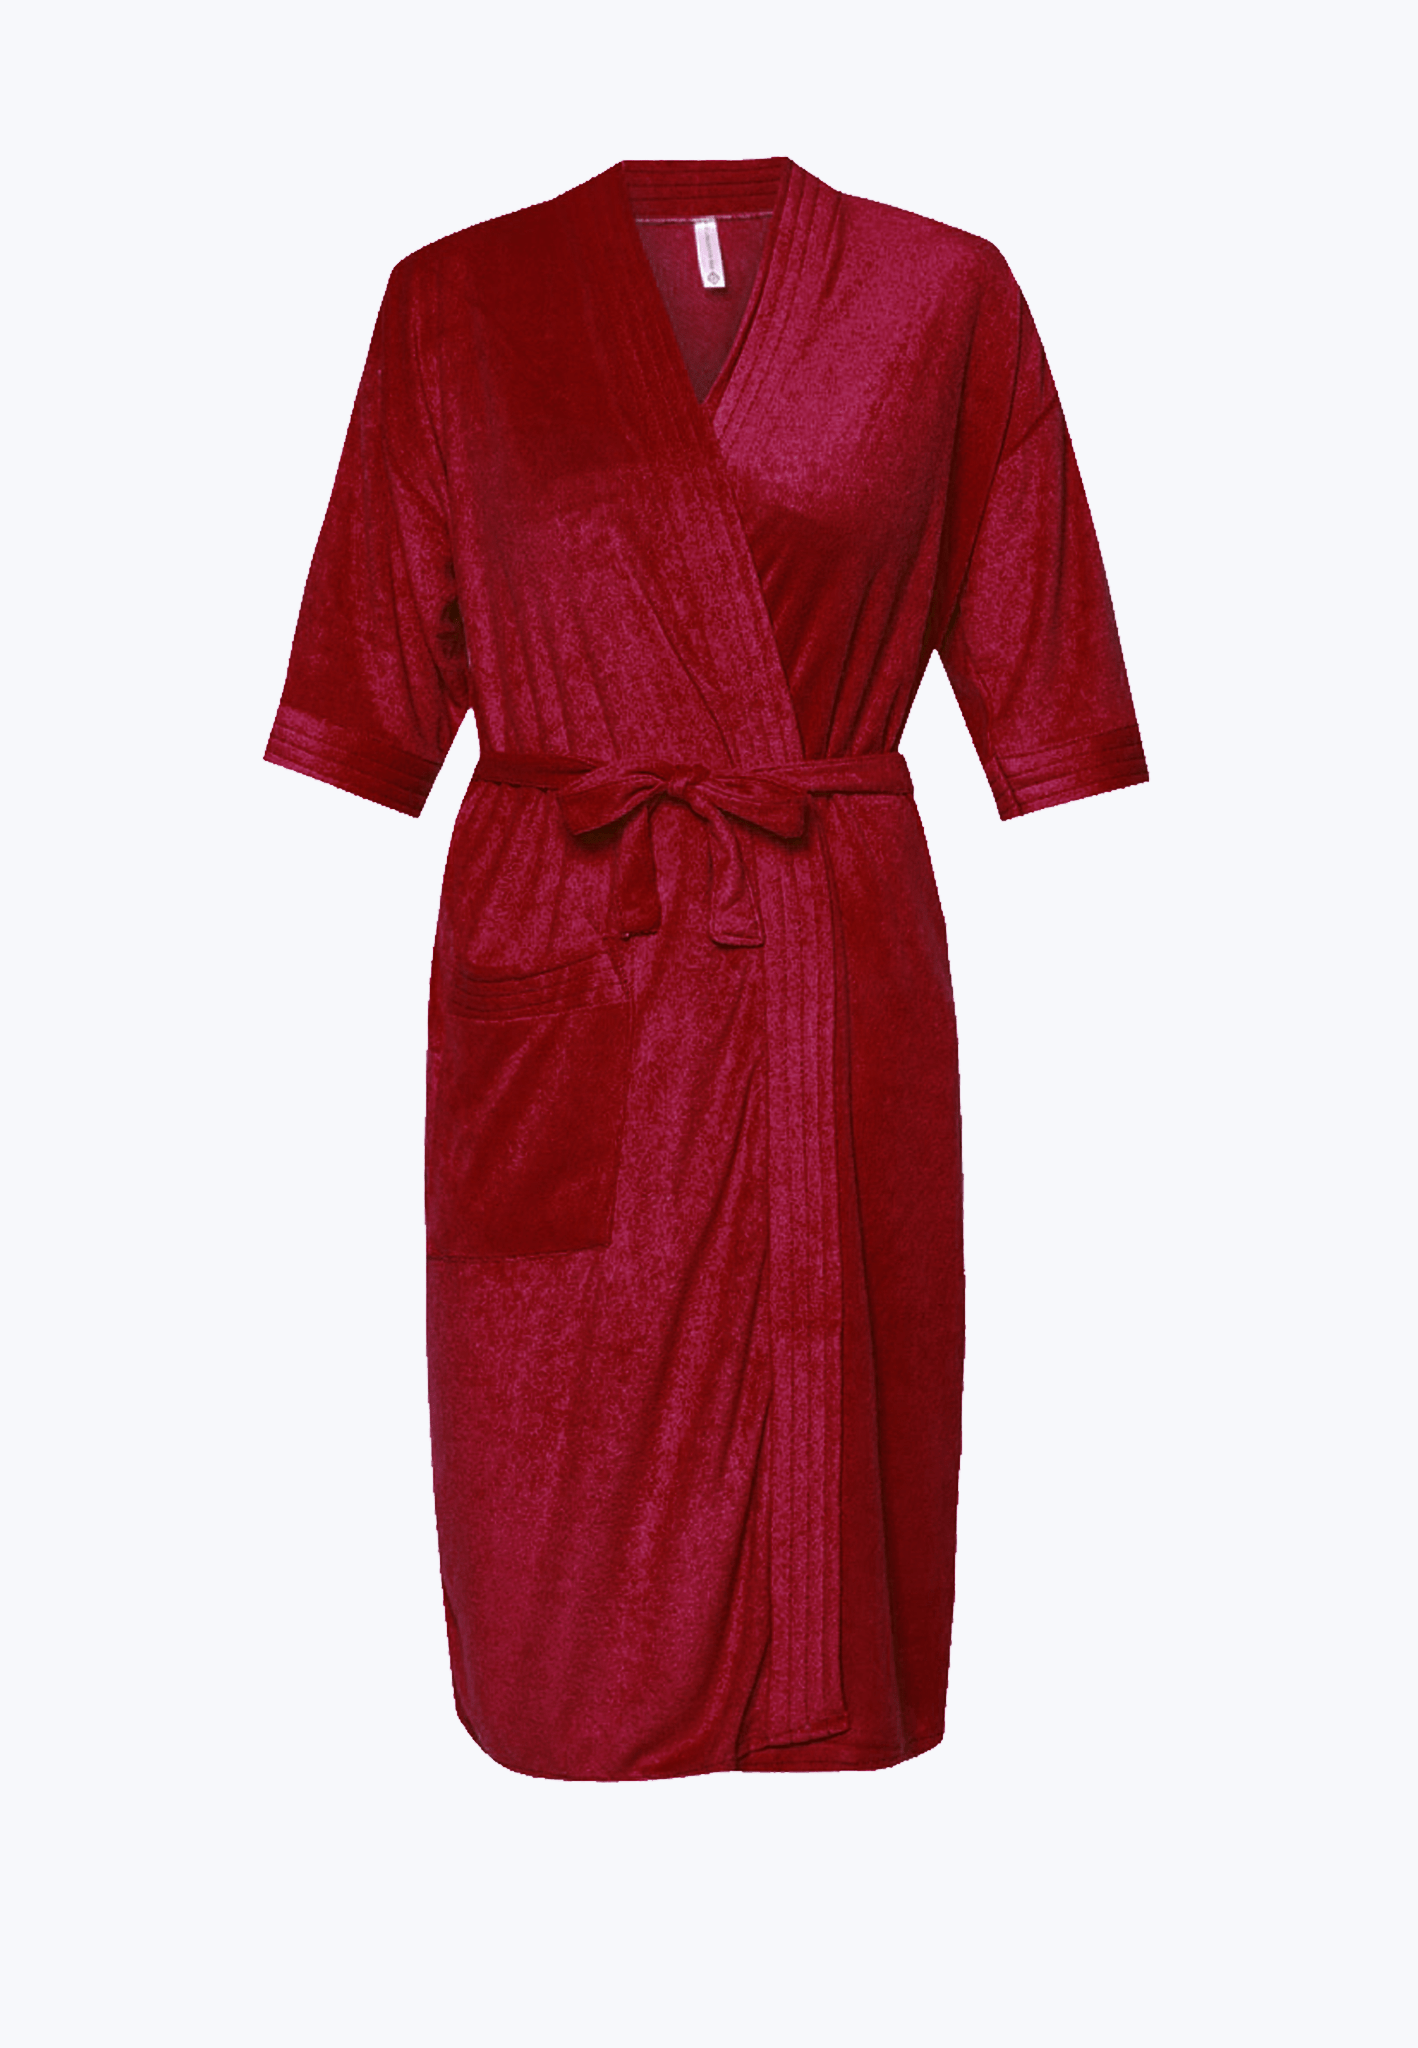 Swim Robe in Maroon - FUNFIT